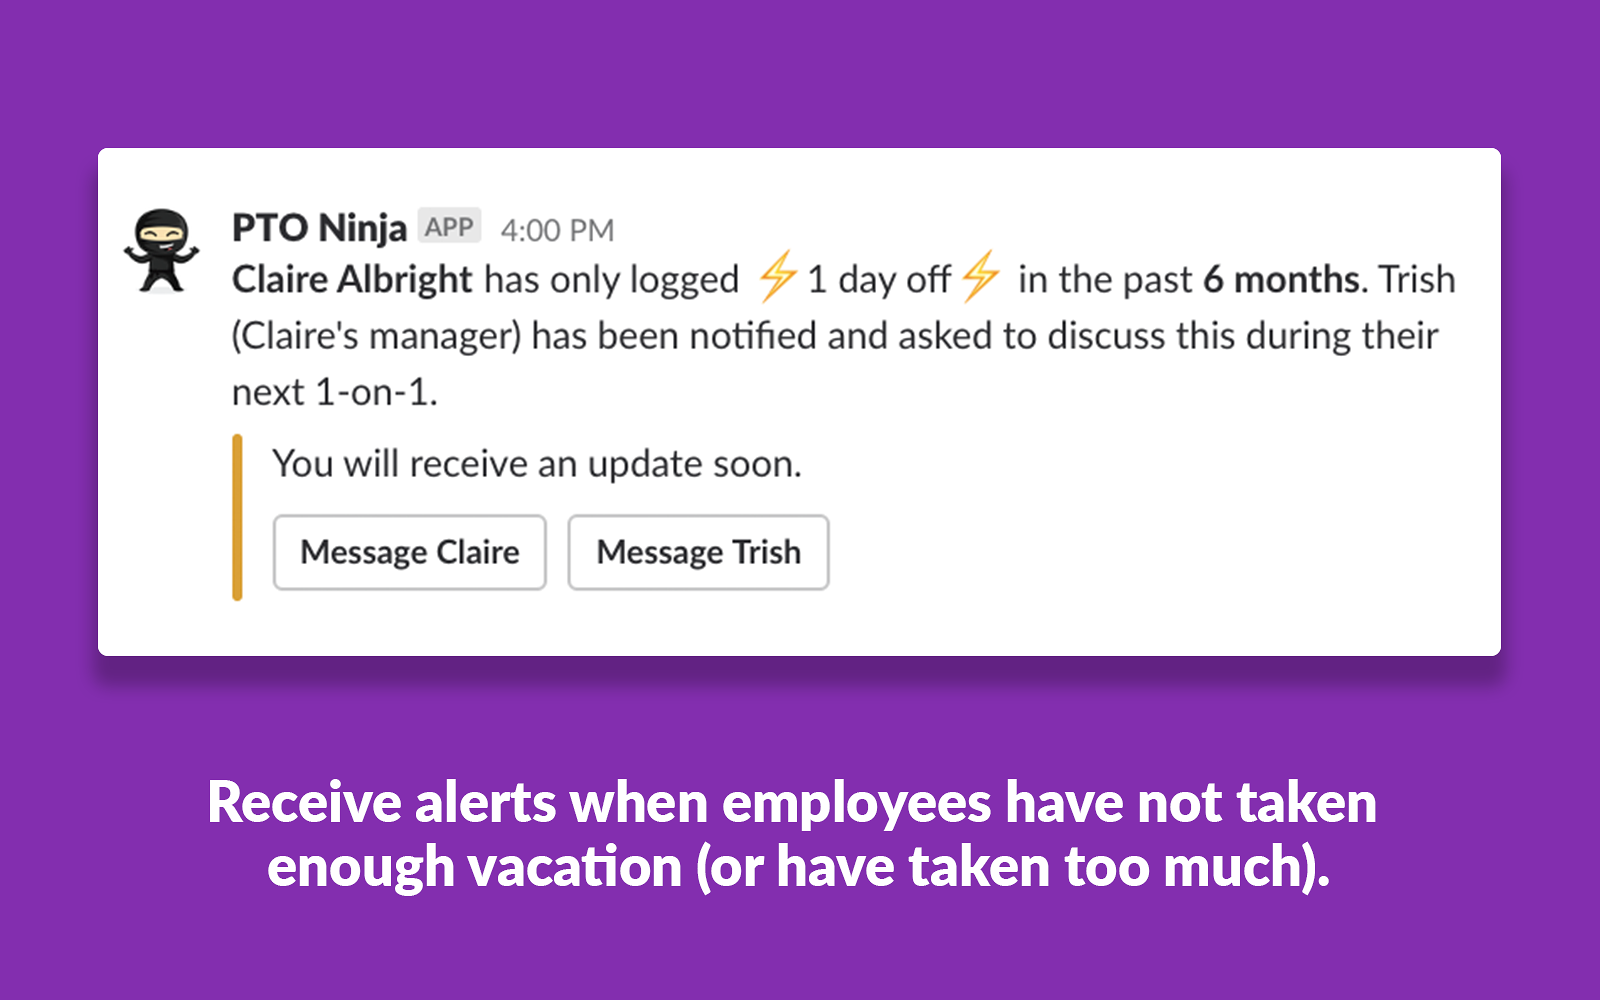 PTO Ninja inspects time off history for signs of burnout. When employees have not taken enough vacation (or have taken too much), PTO Ninja notifies managers and employees automatically.